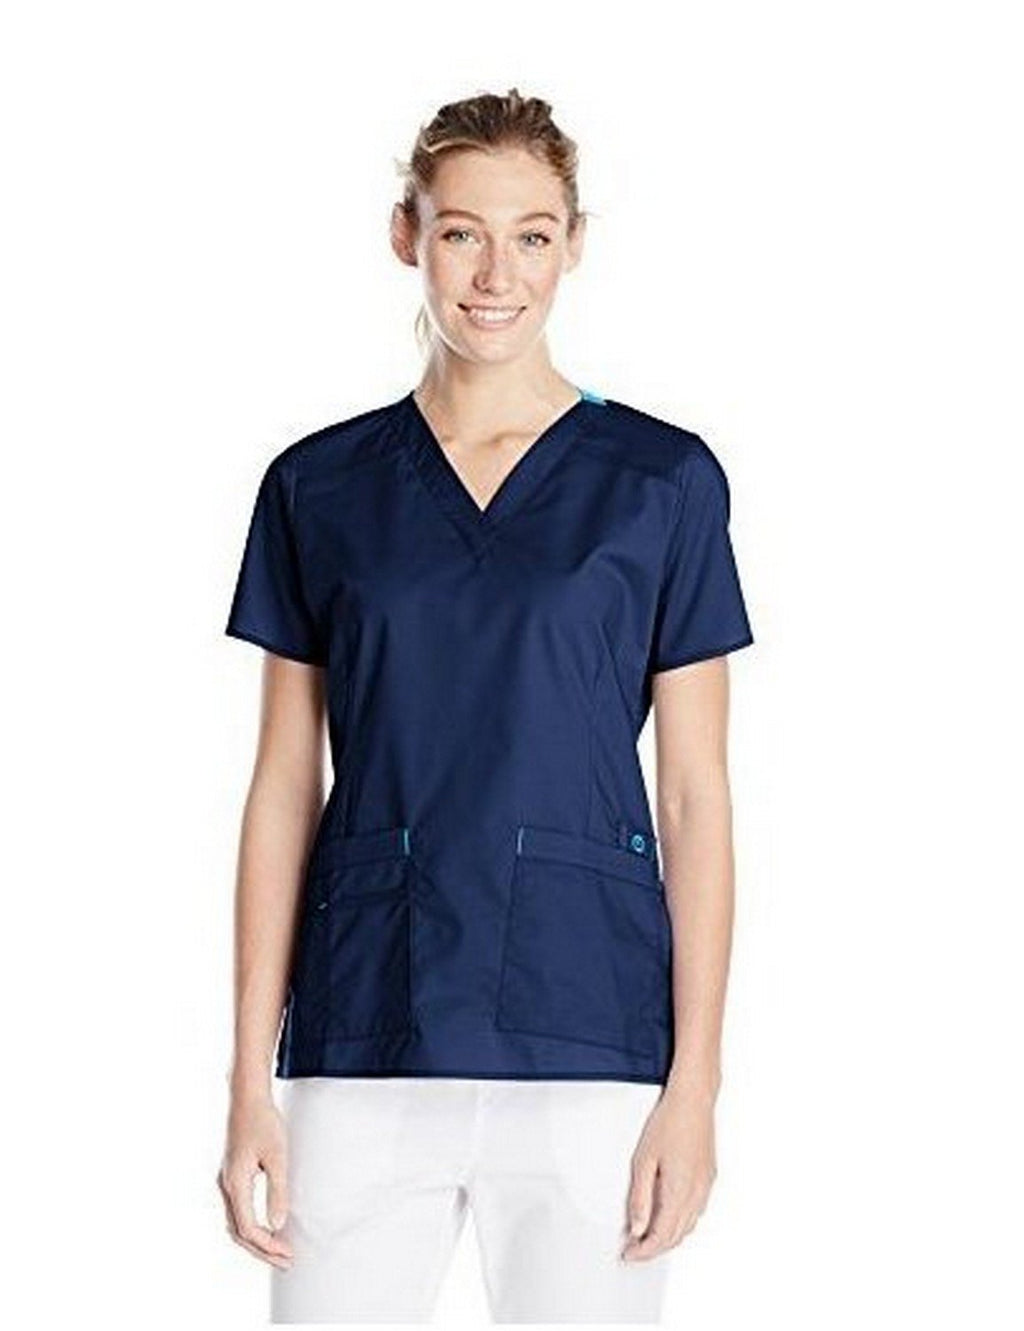 wonderwink-women's-wonderflex-verity-scrub-top